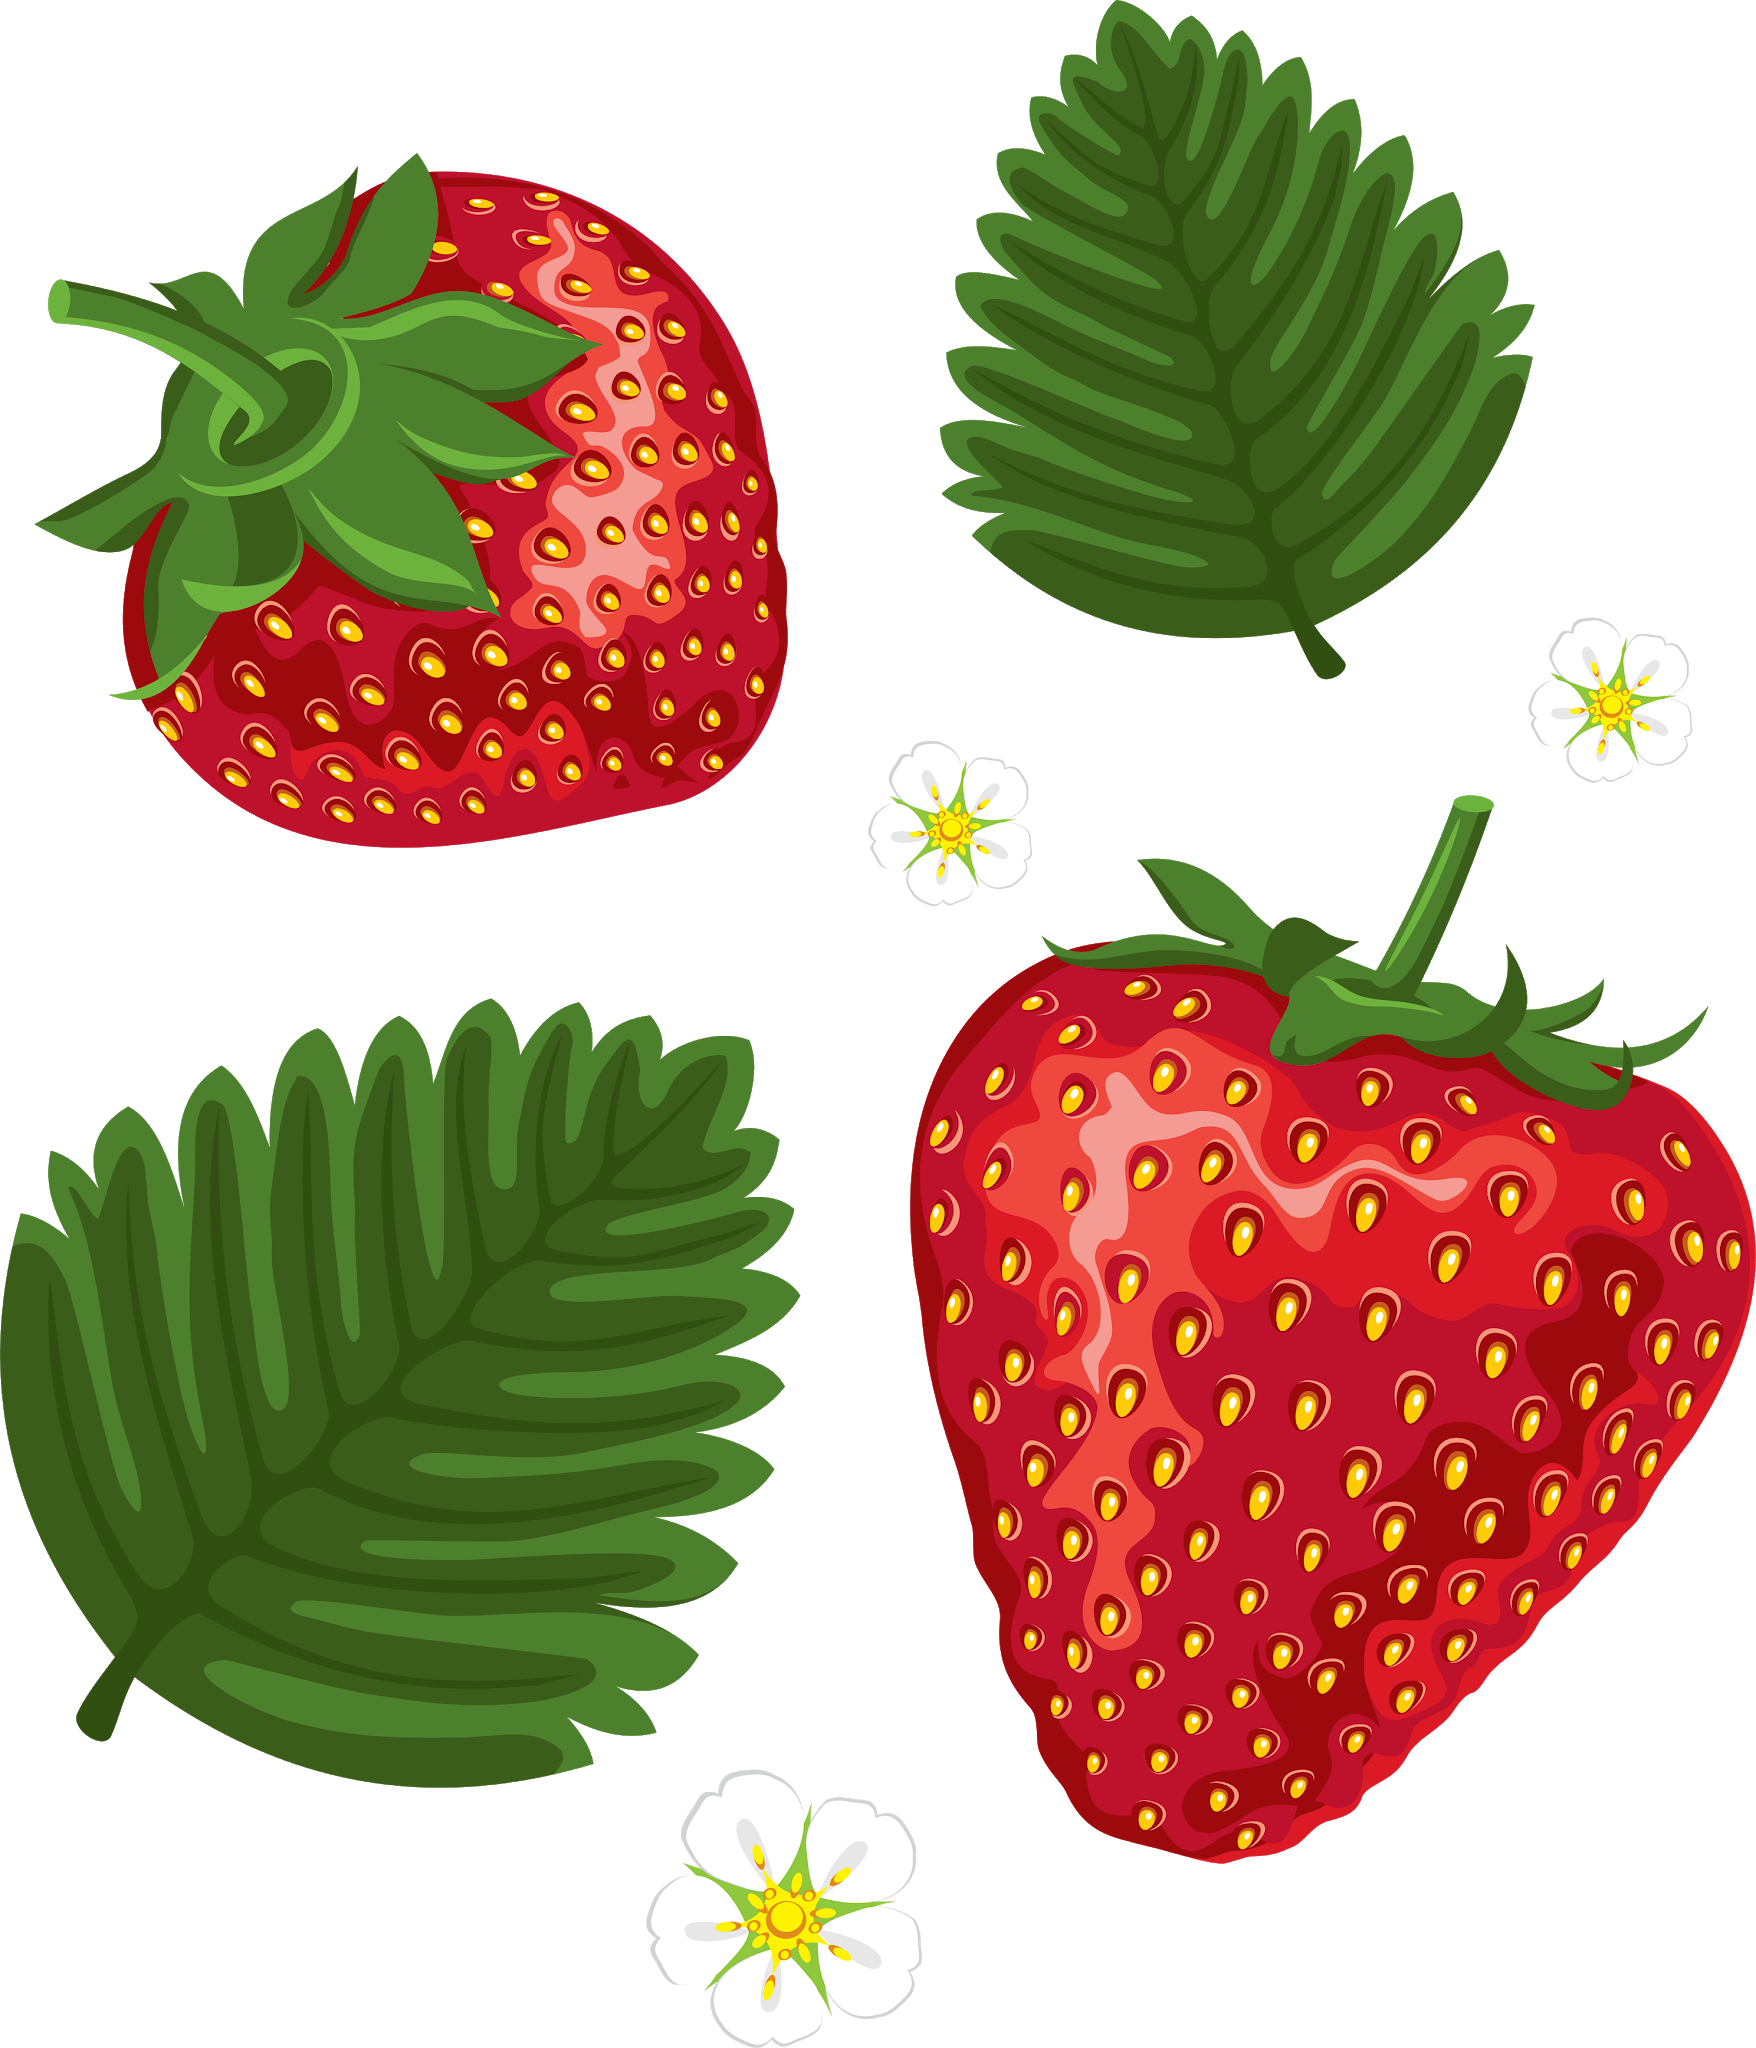 Strawberries clipart leaf. Pin by pngsector on